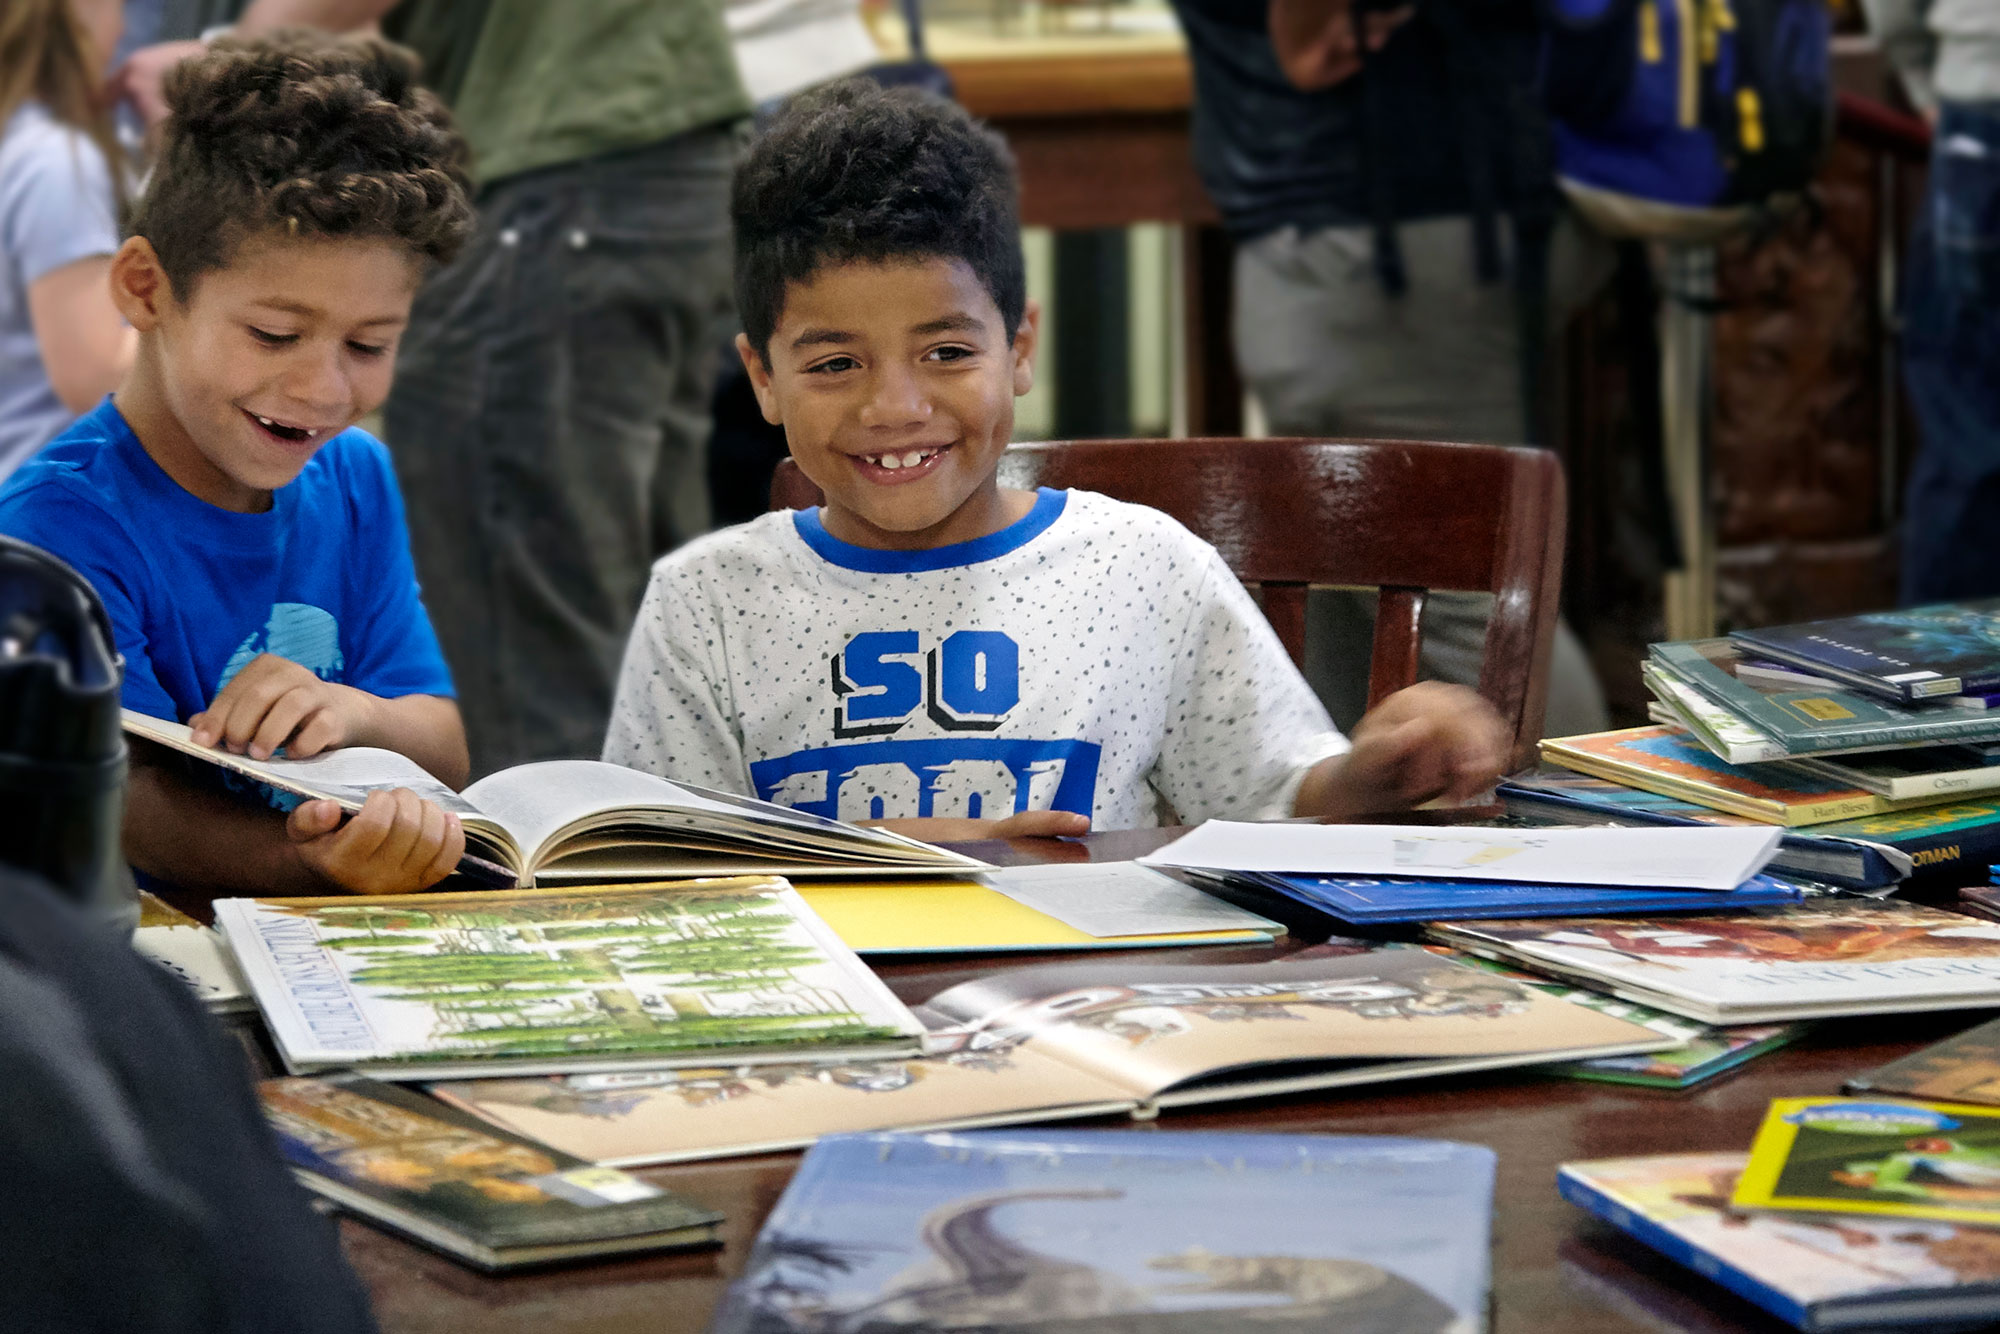 Two children seated at a table look at picture books.